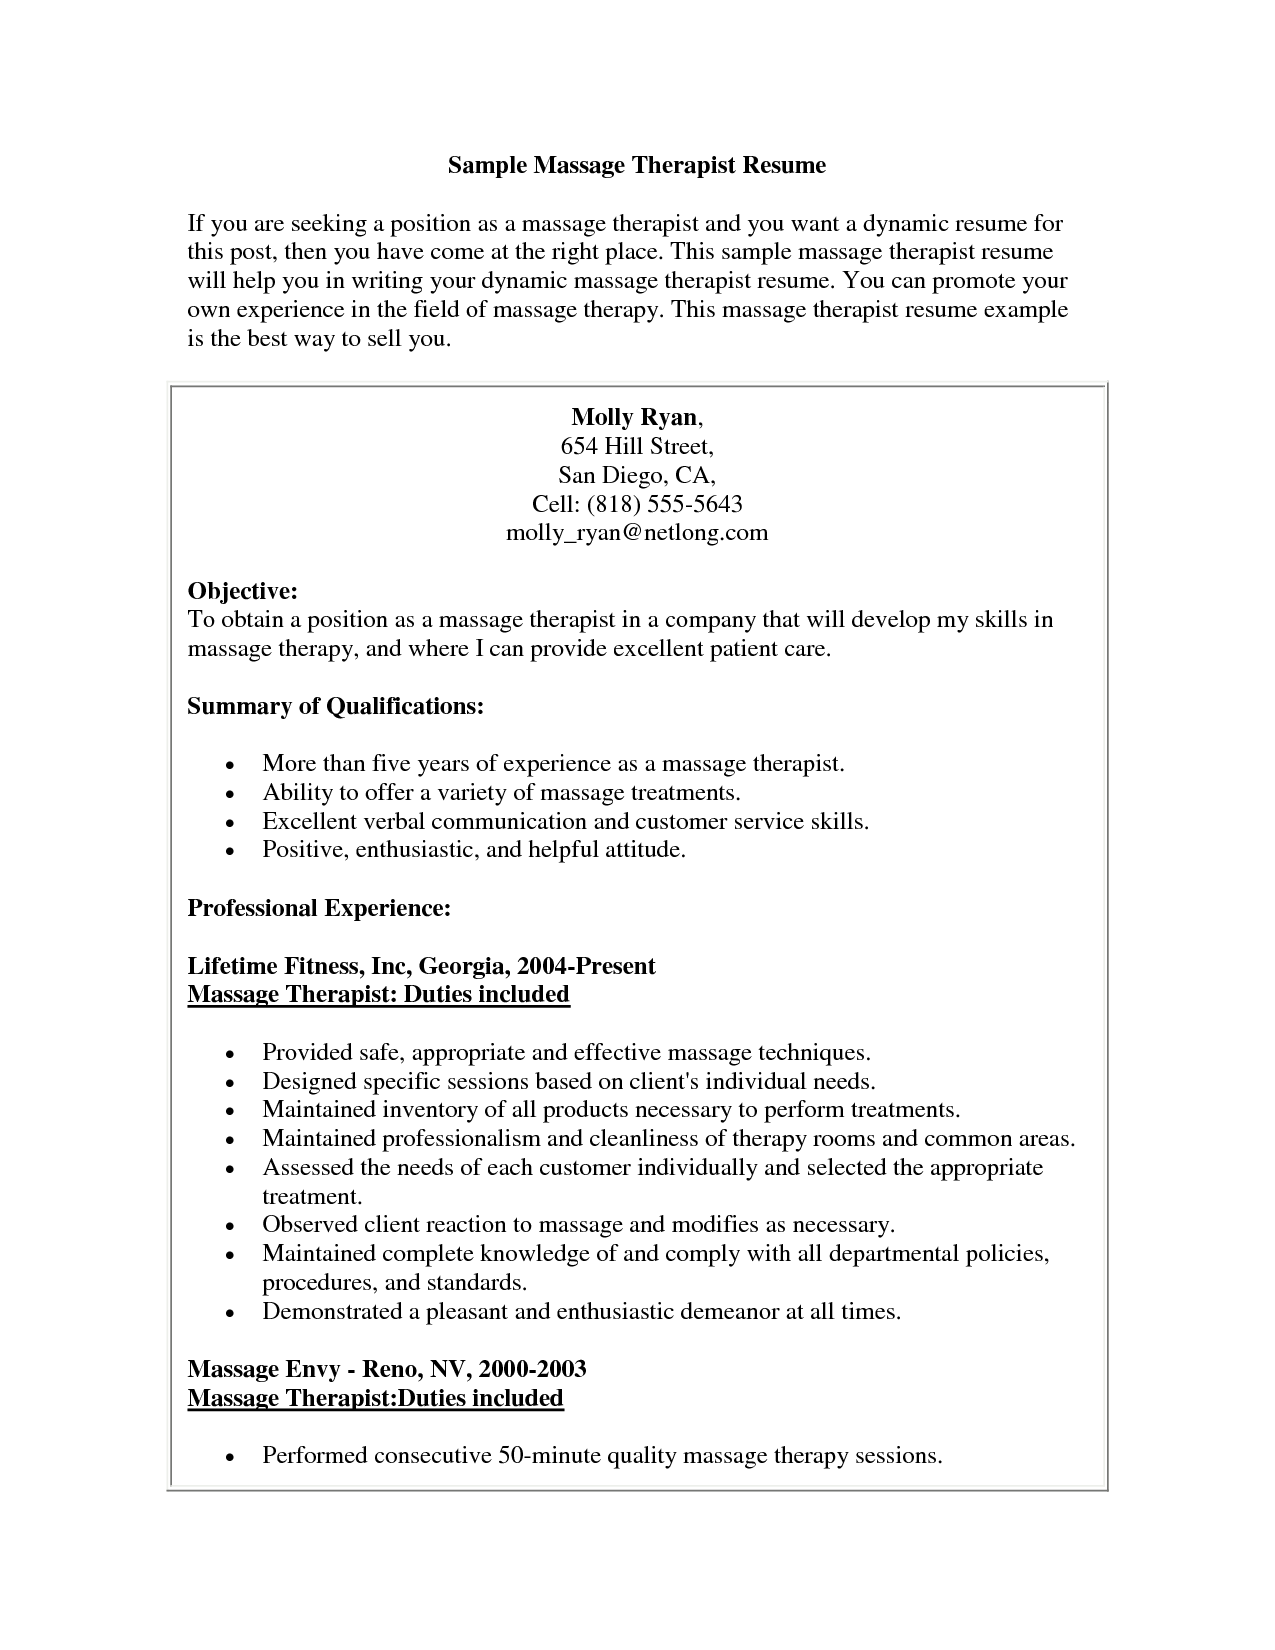 massage therapist resume sample massage therapist resume sample massage therapist resume objective massage therapist - Massage Therapy Resume Examples